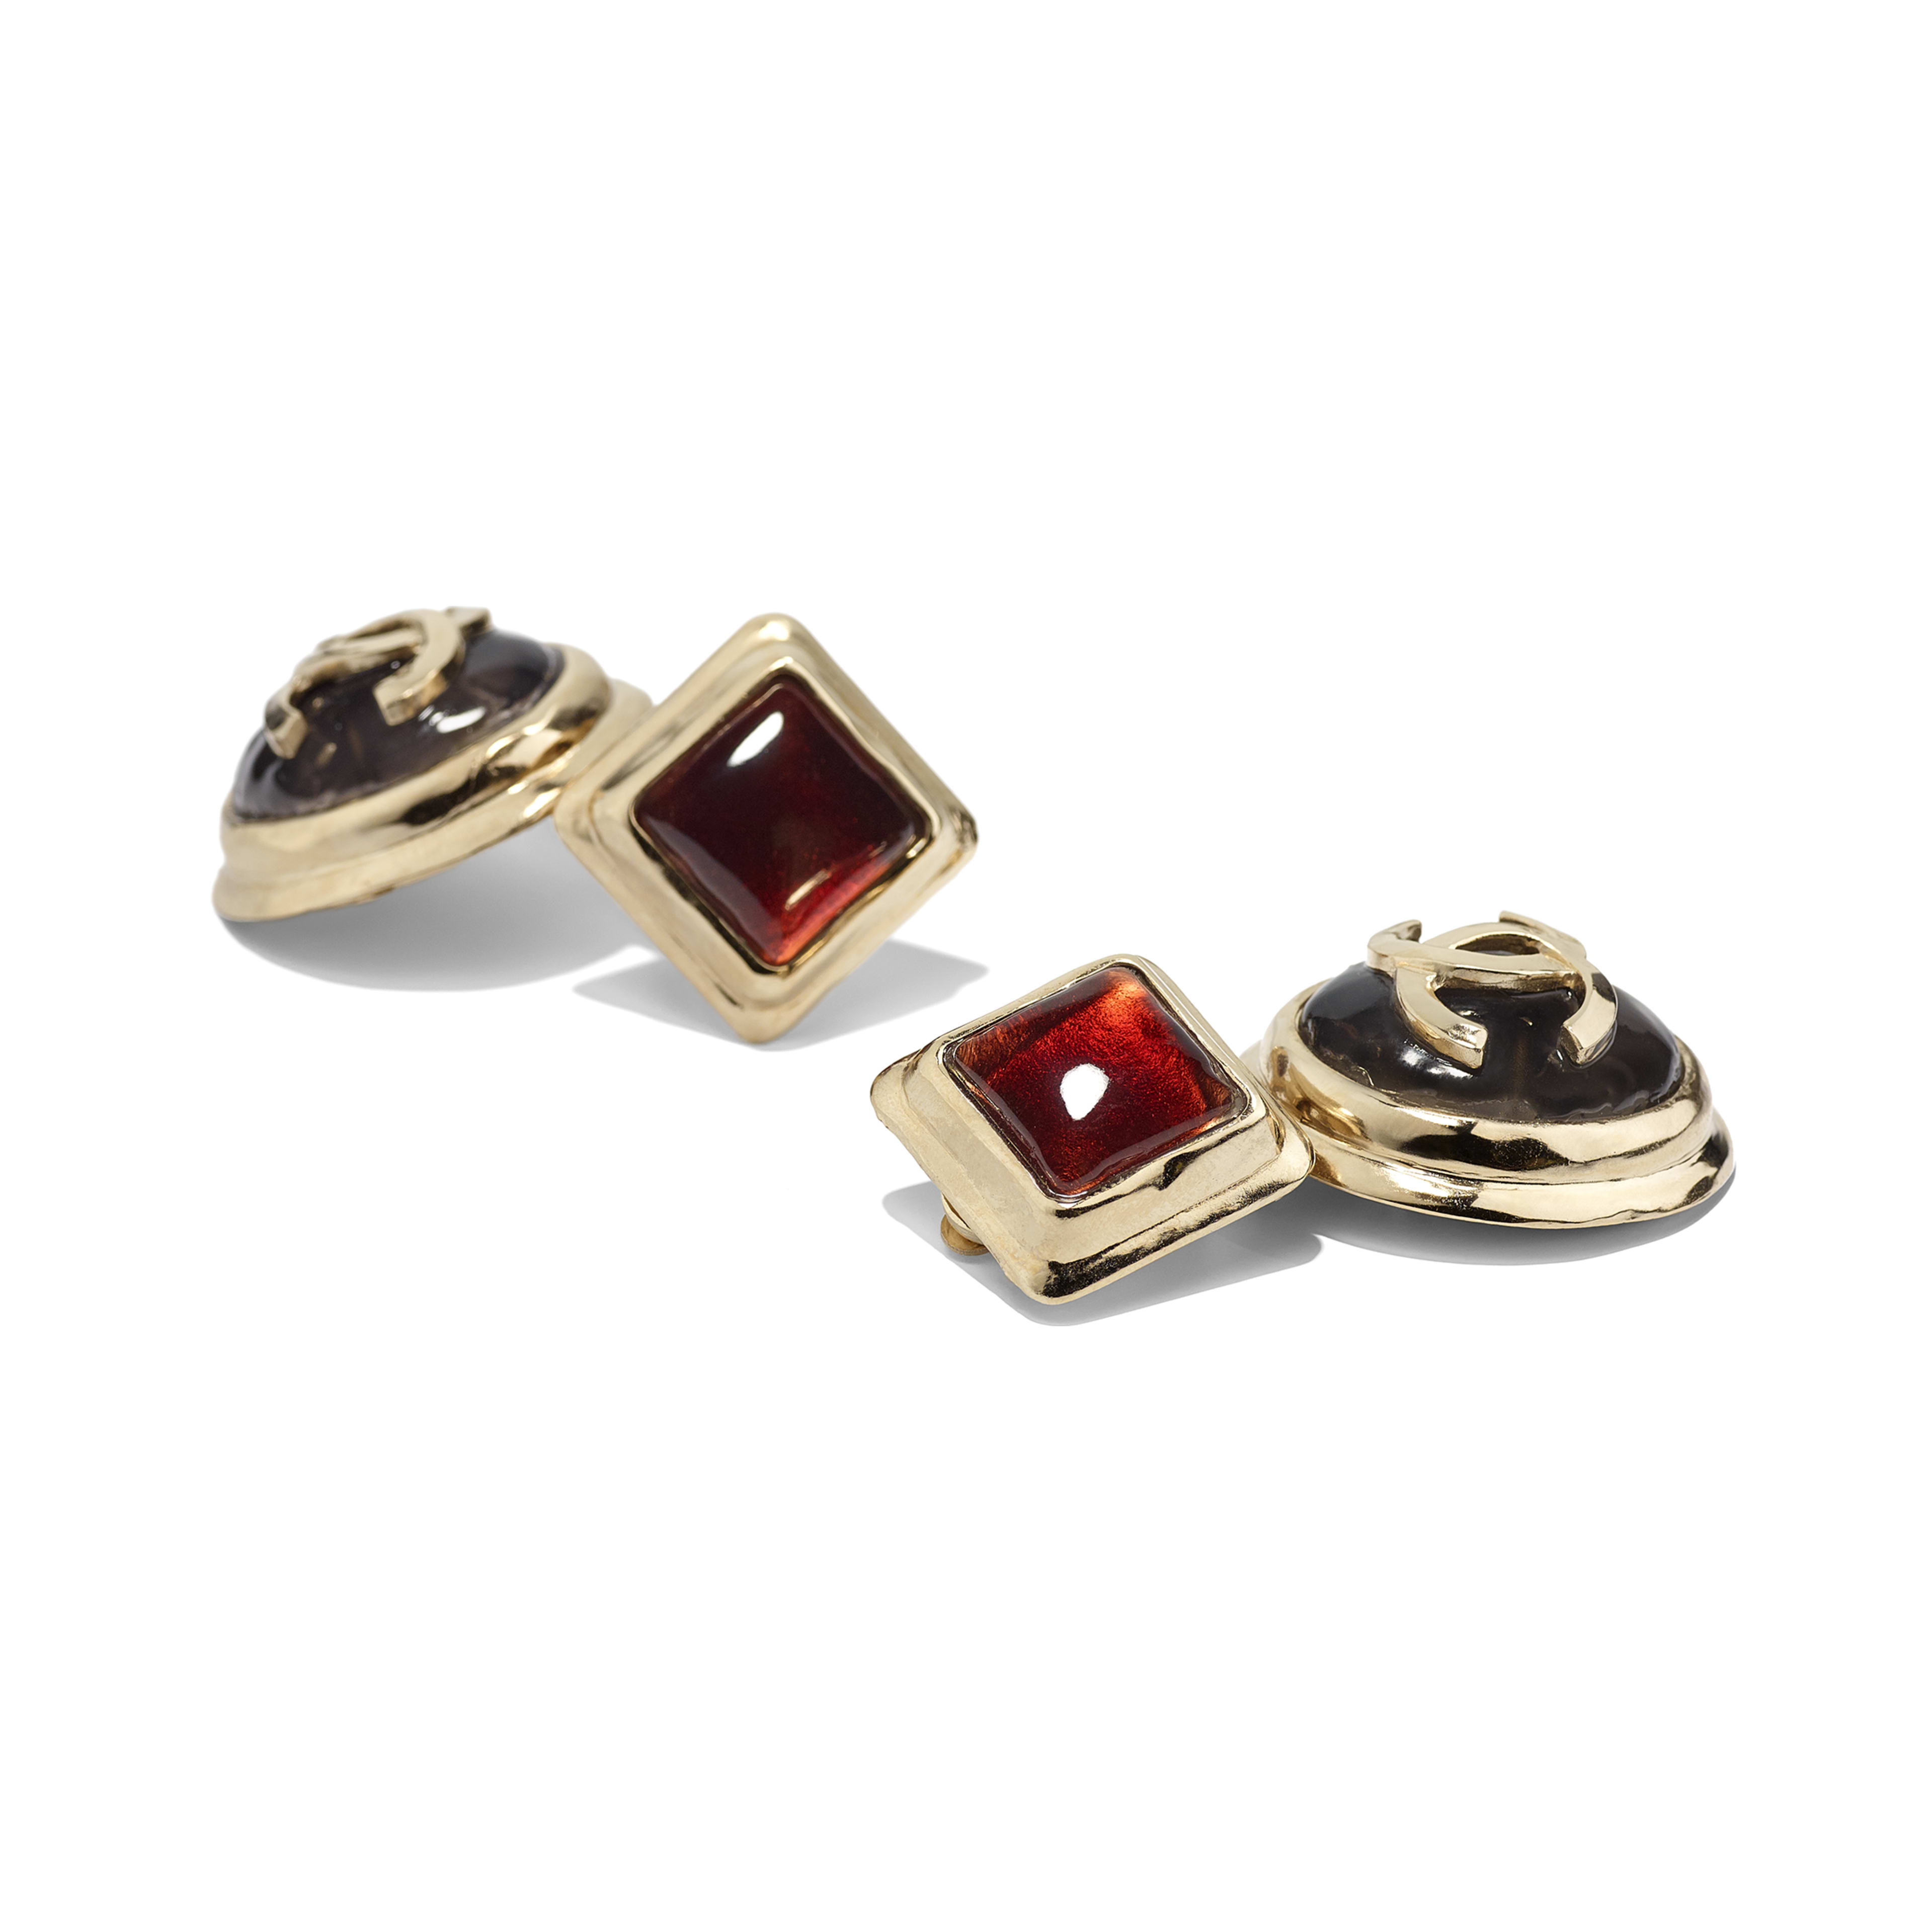 Clip-On Earrings - Gold, Black & Burgundy - Metal & Resin - Alternative view - see full sized version